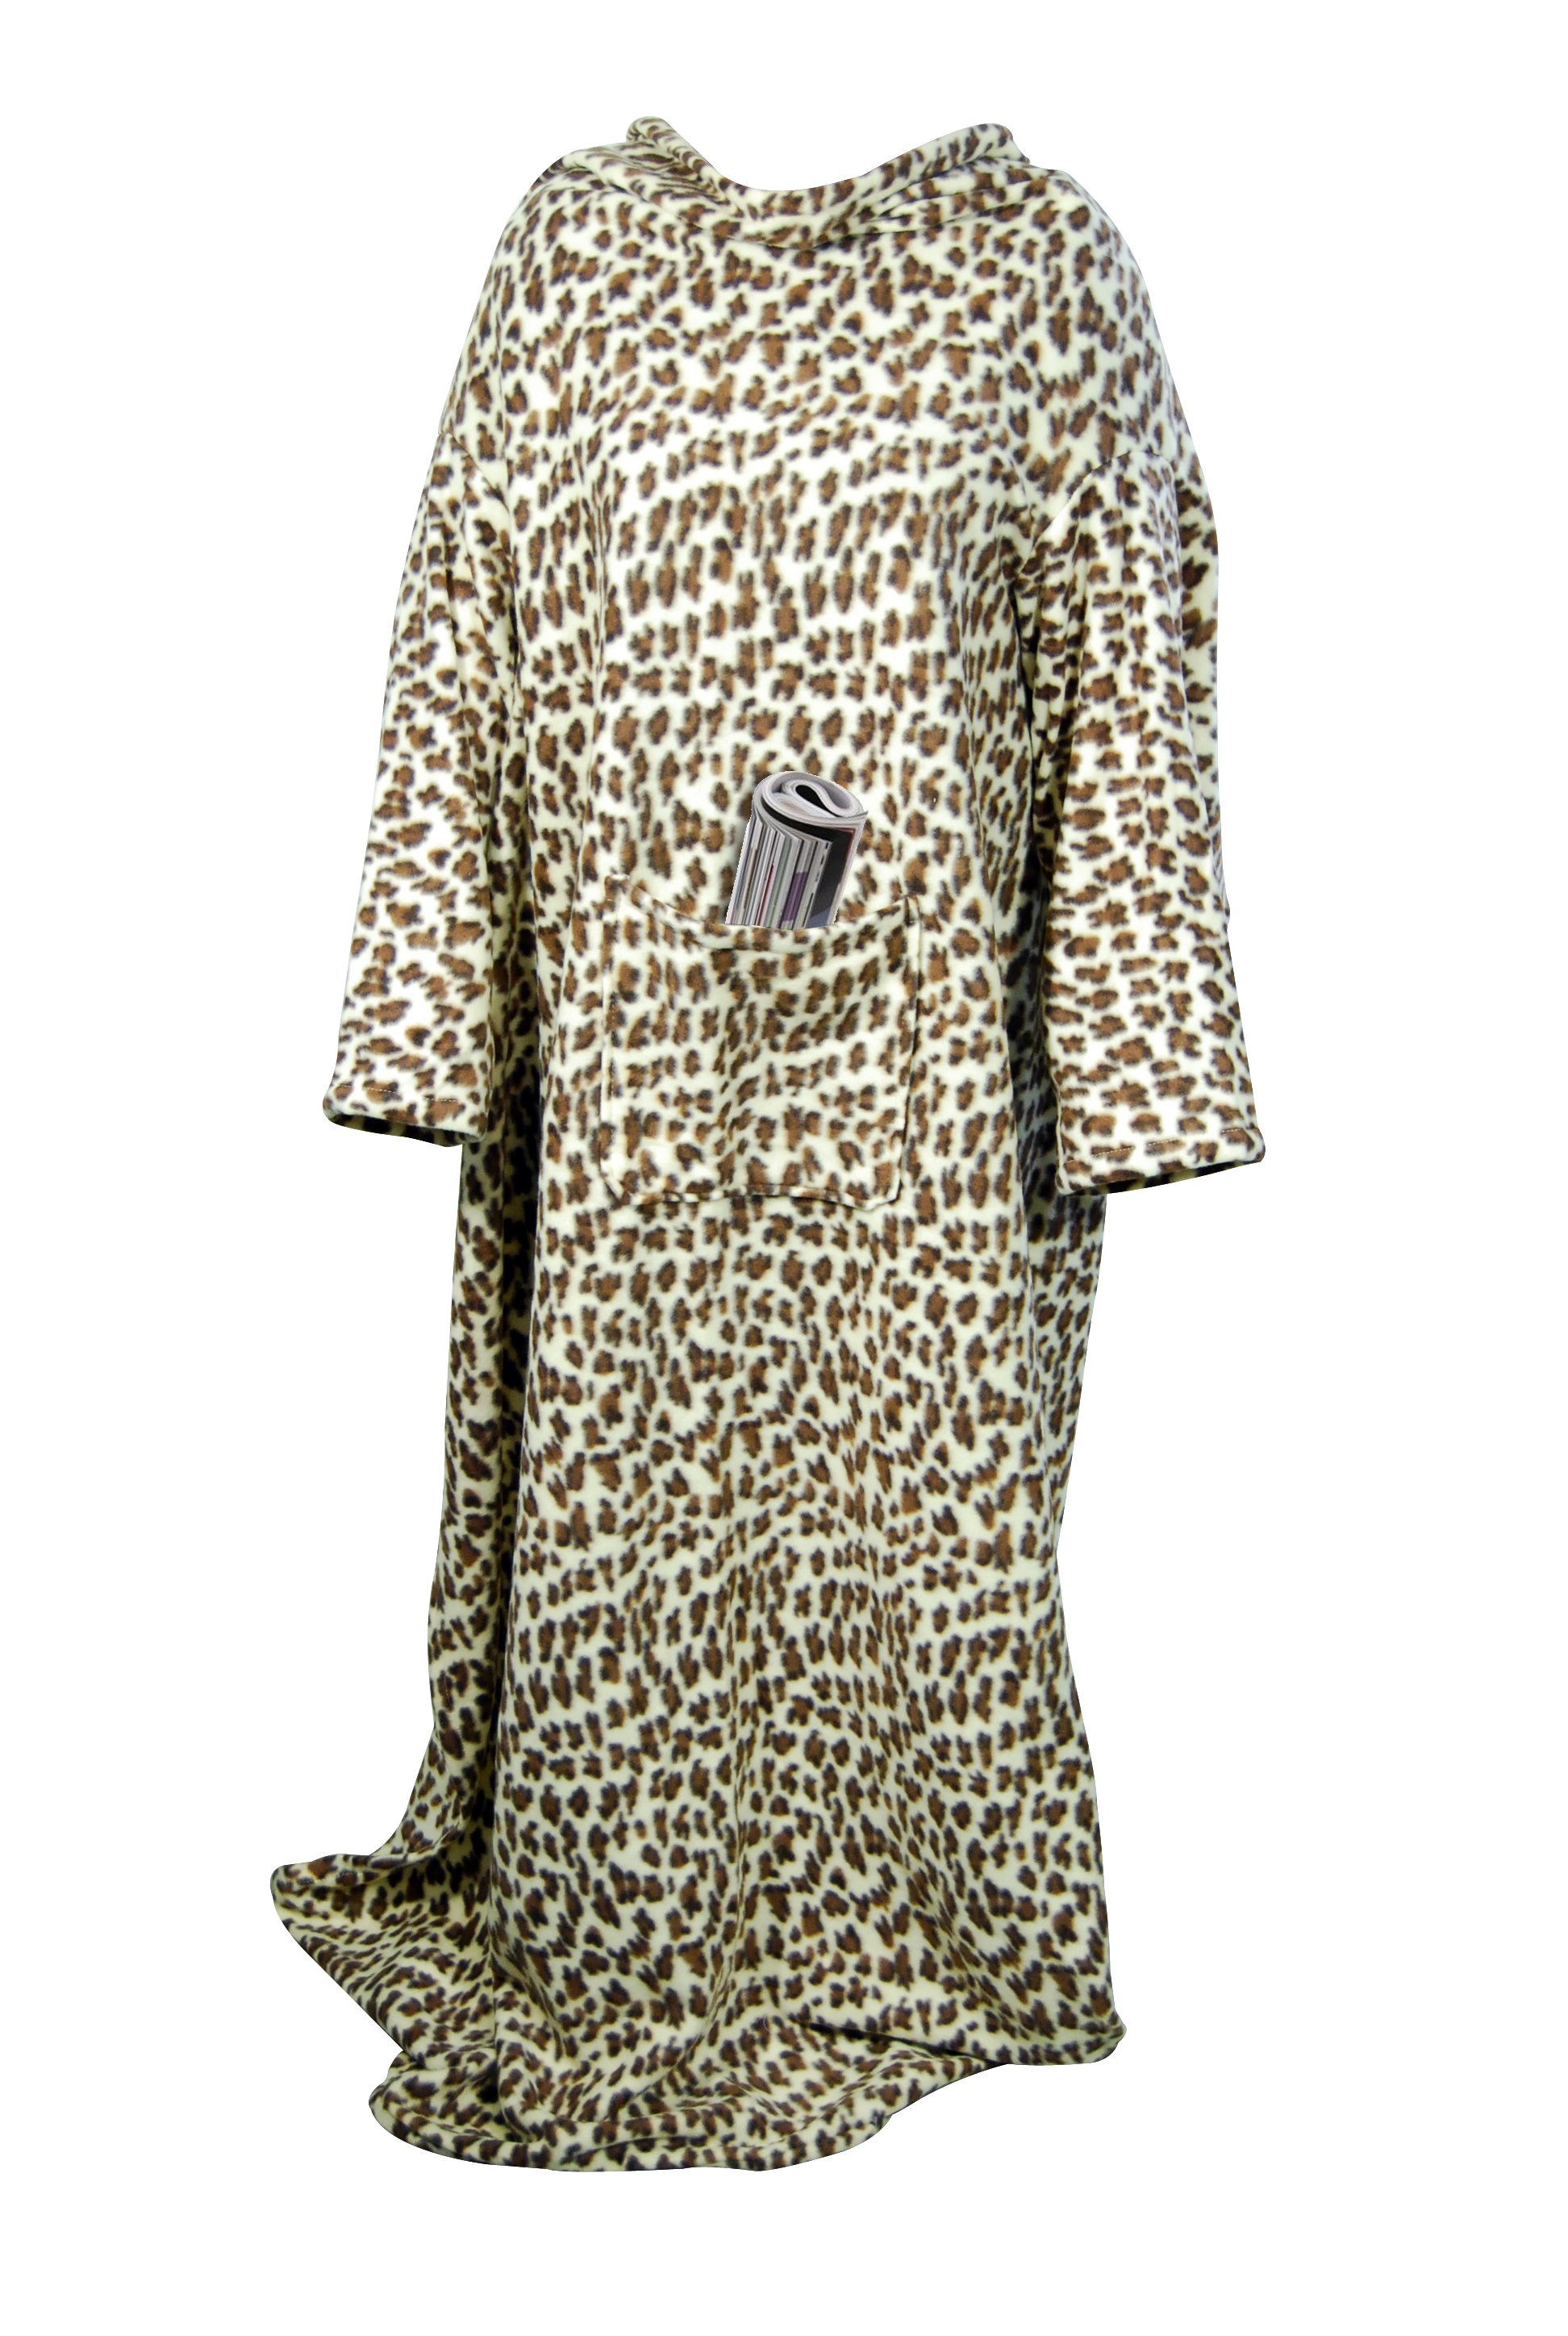 ANIMAL PRINT COZY BODY BLANKET